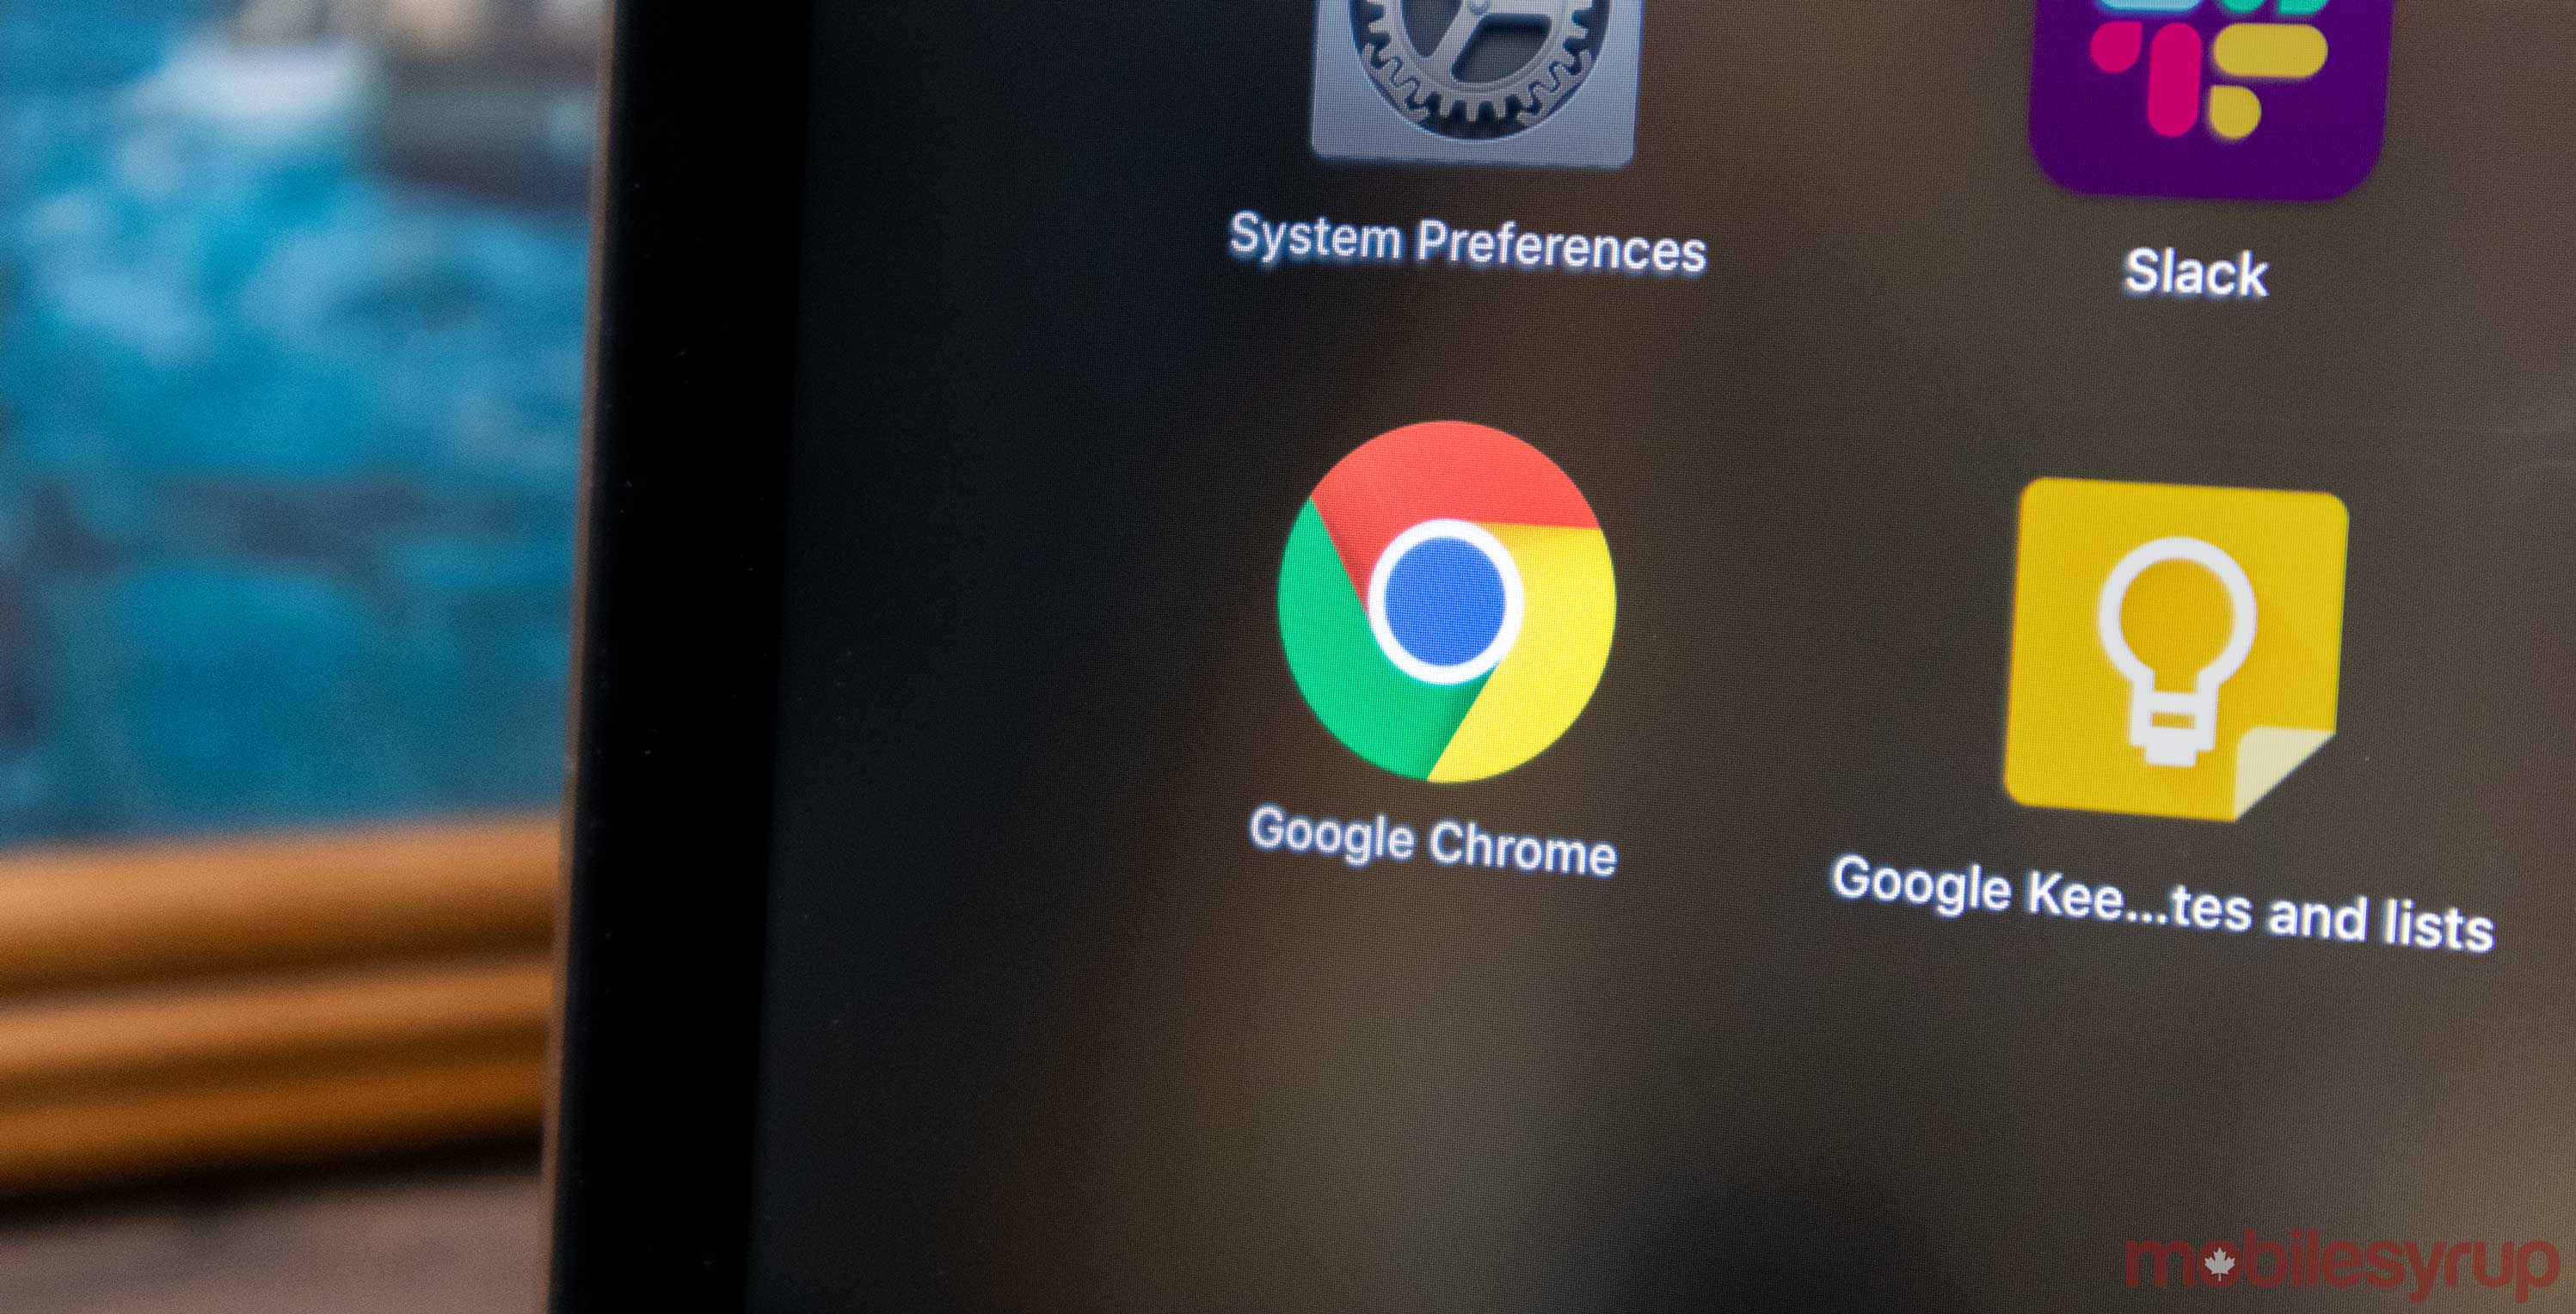 Google Chrome adds built-in themes and customizations on tab page